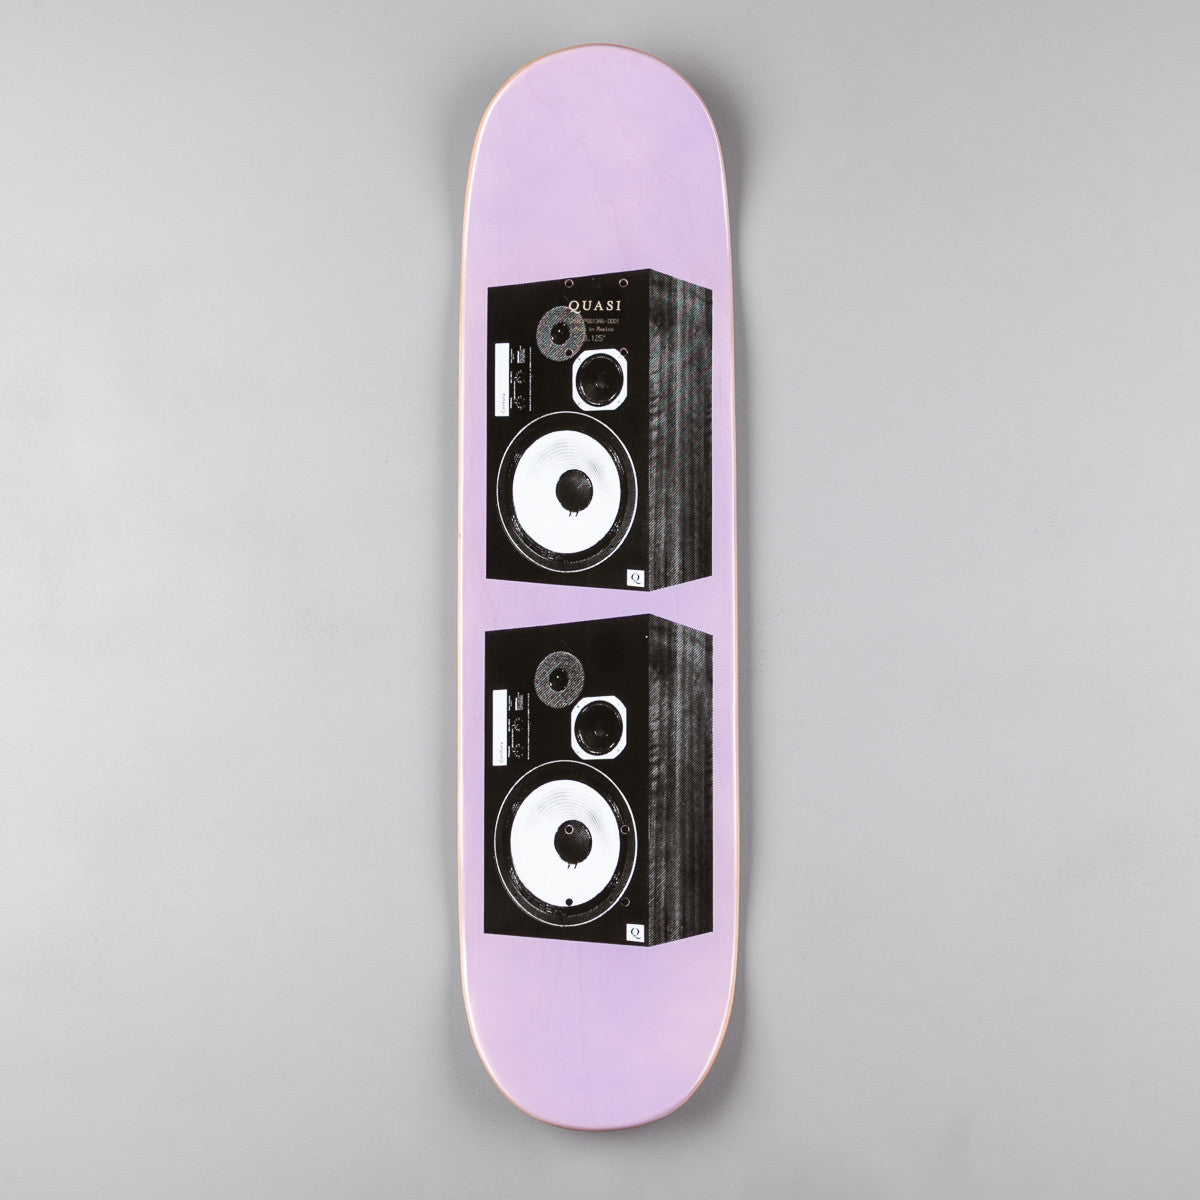 Quasi Lavish [One] Deck - Lavenderwash - 8.125""